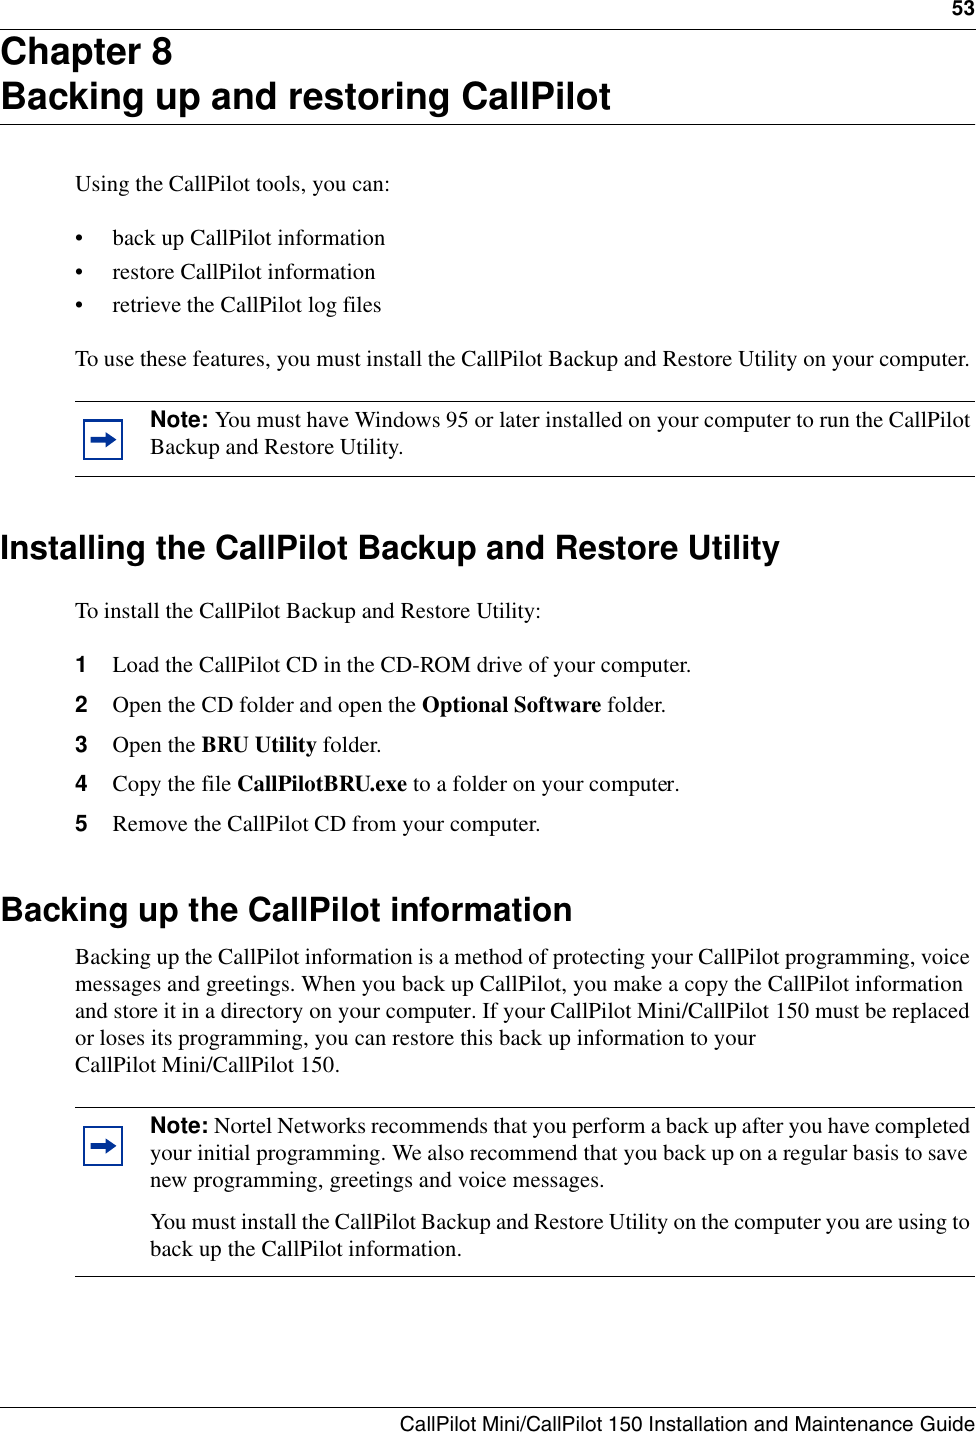 Nortel Networks Switch P0990474 03 Users Manual CallPilot